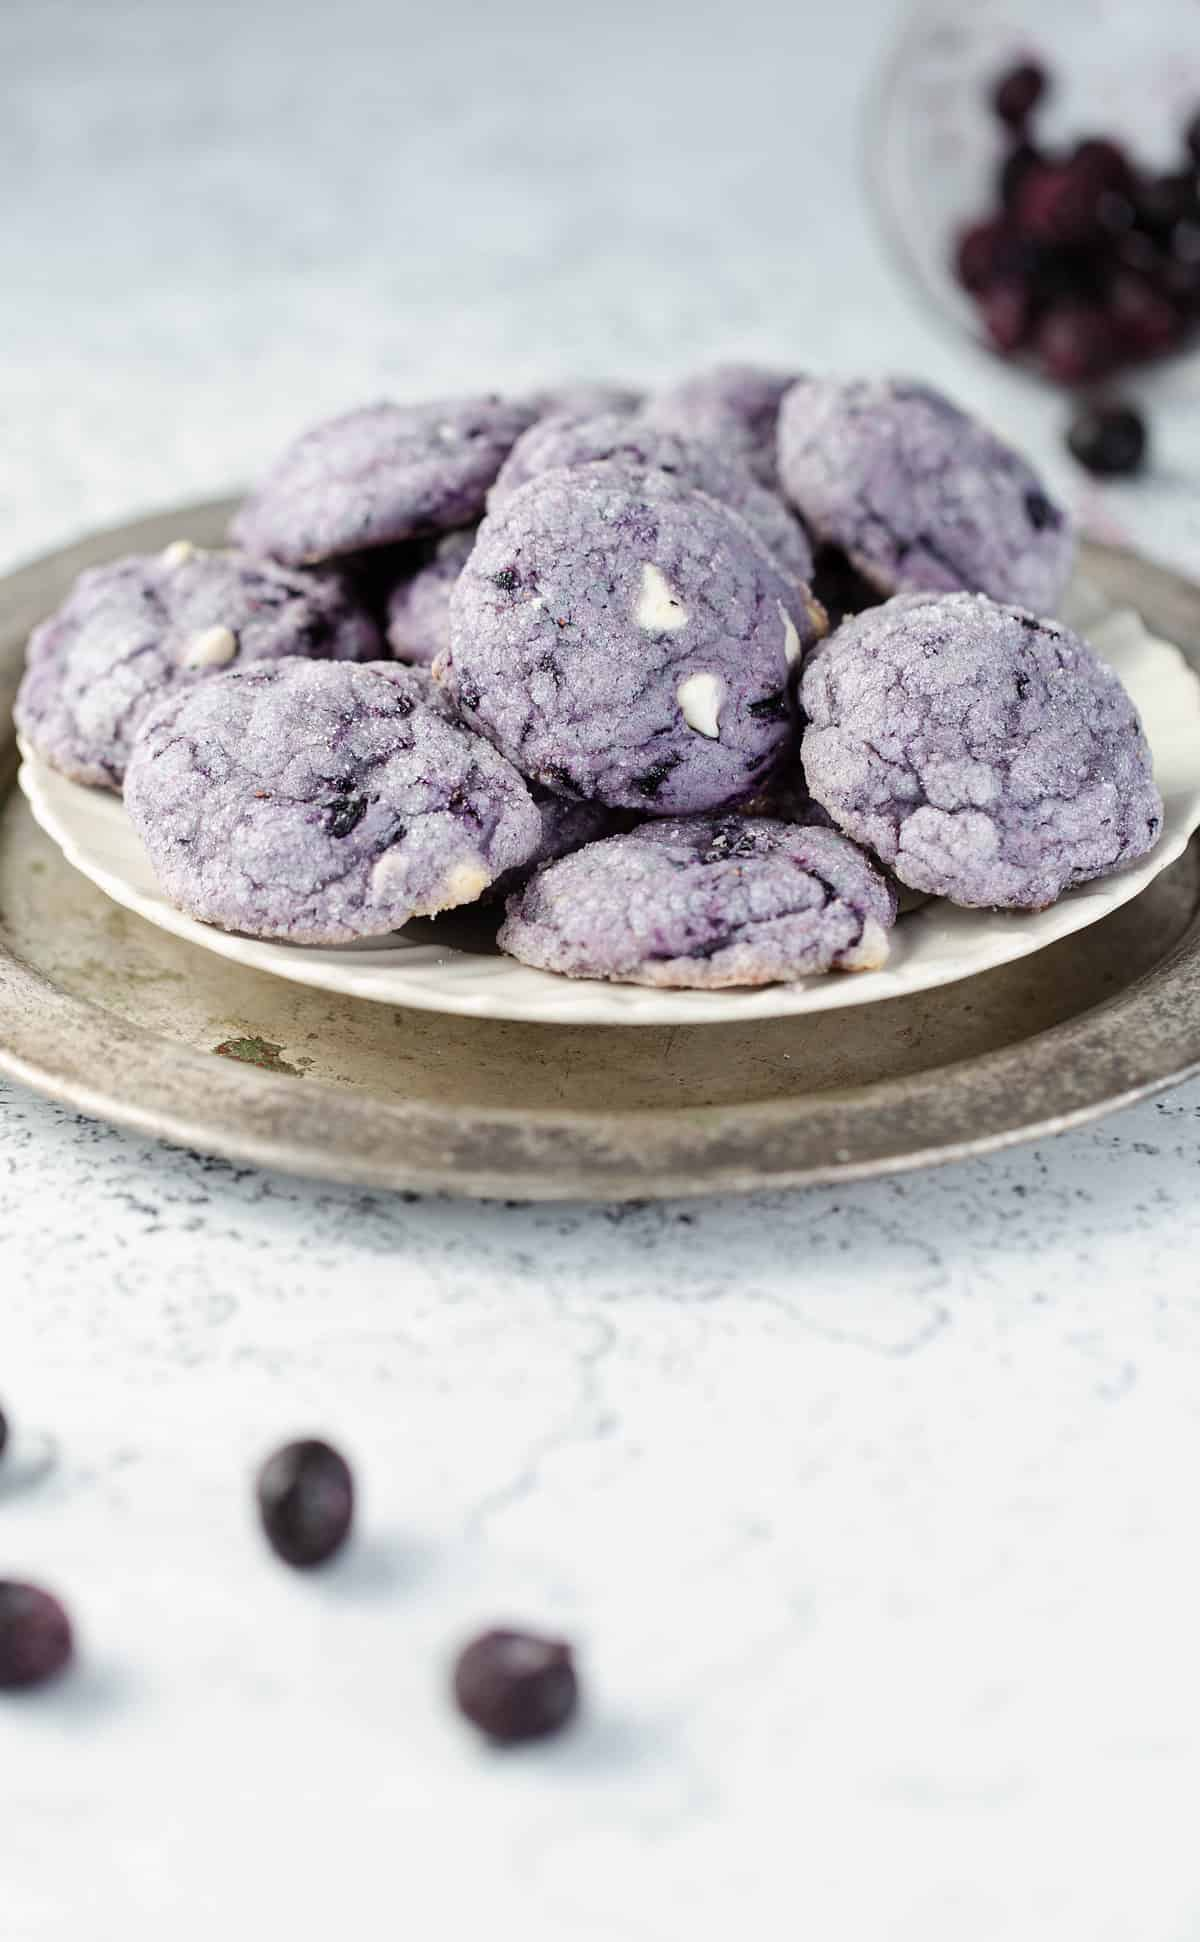 Vibrant Chewy Blueberry Cookies are a naturally colored purple cookie bursting with fresh blueberry flavor from fresh or frozen berries!  blueberry cookies | blueberry recipes | blueberry desserts | purple foods